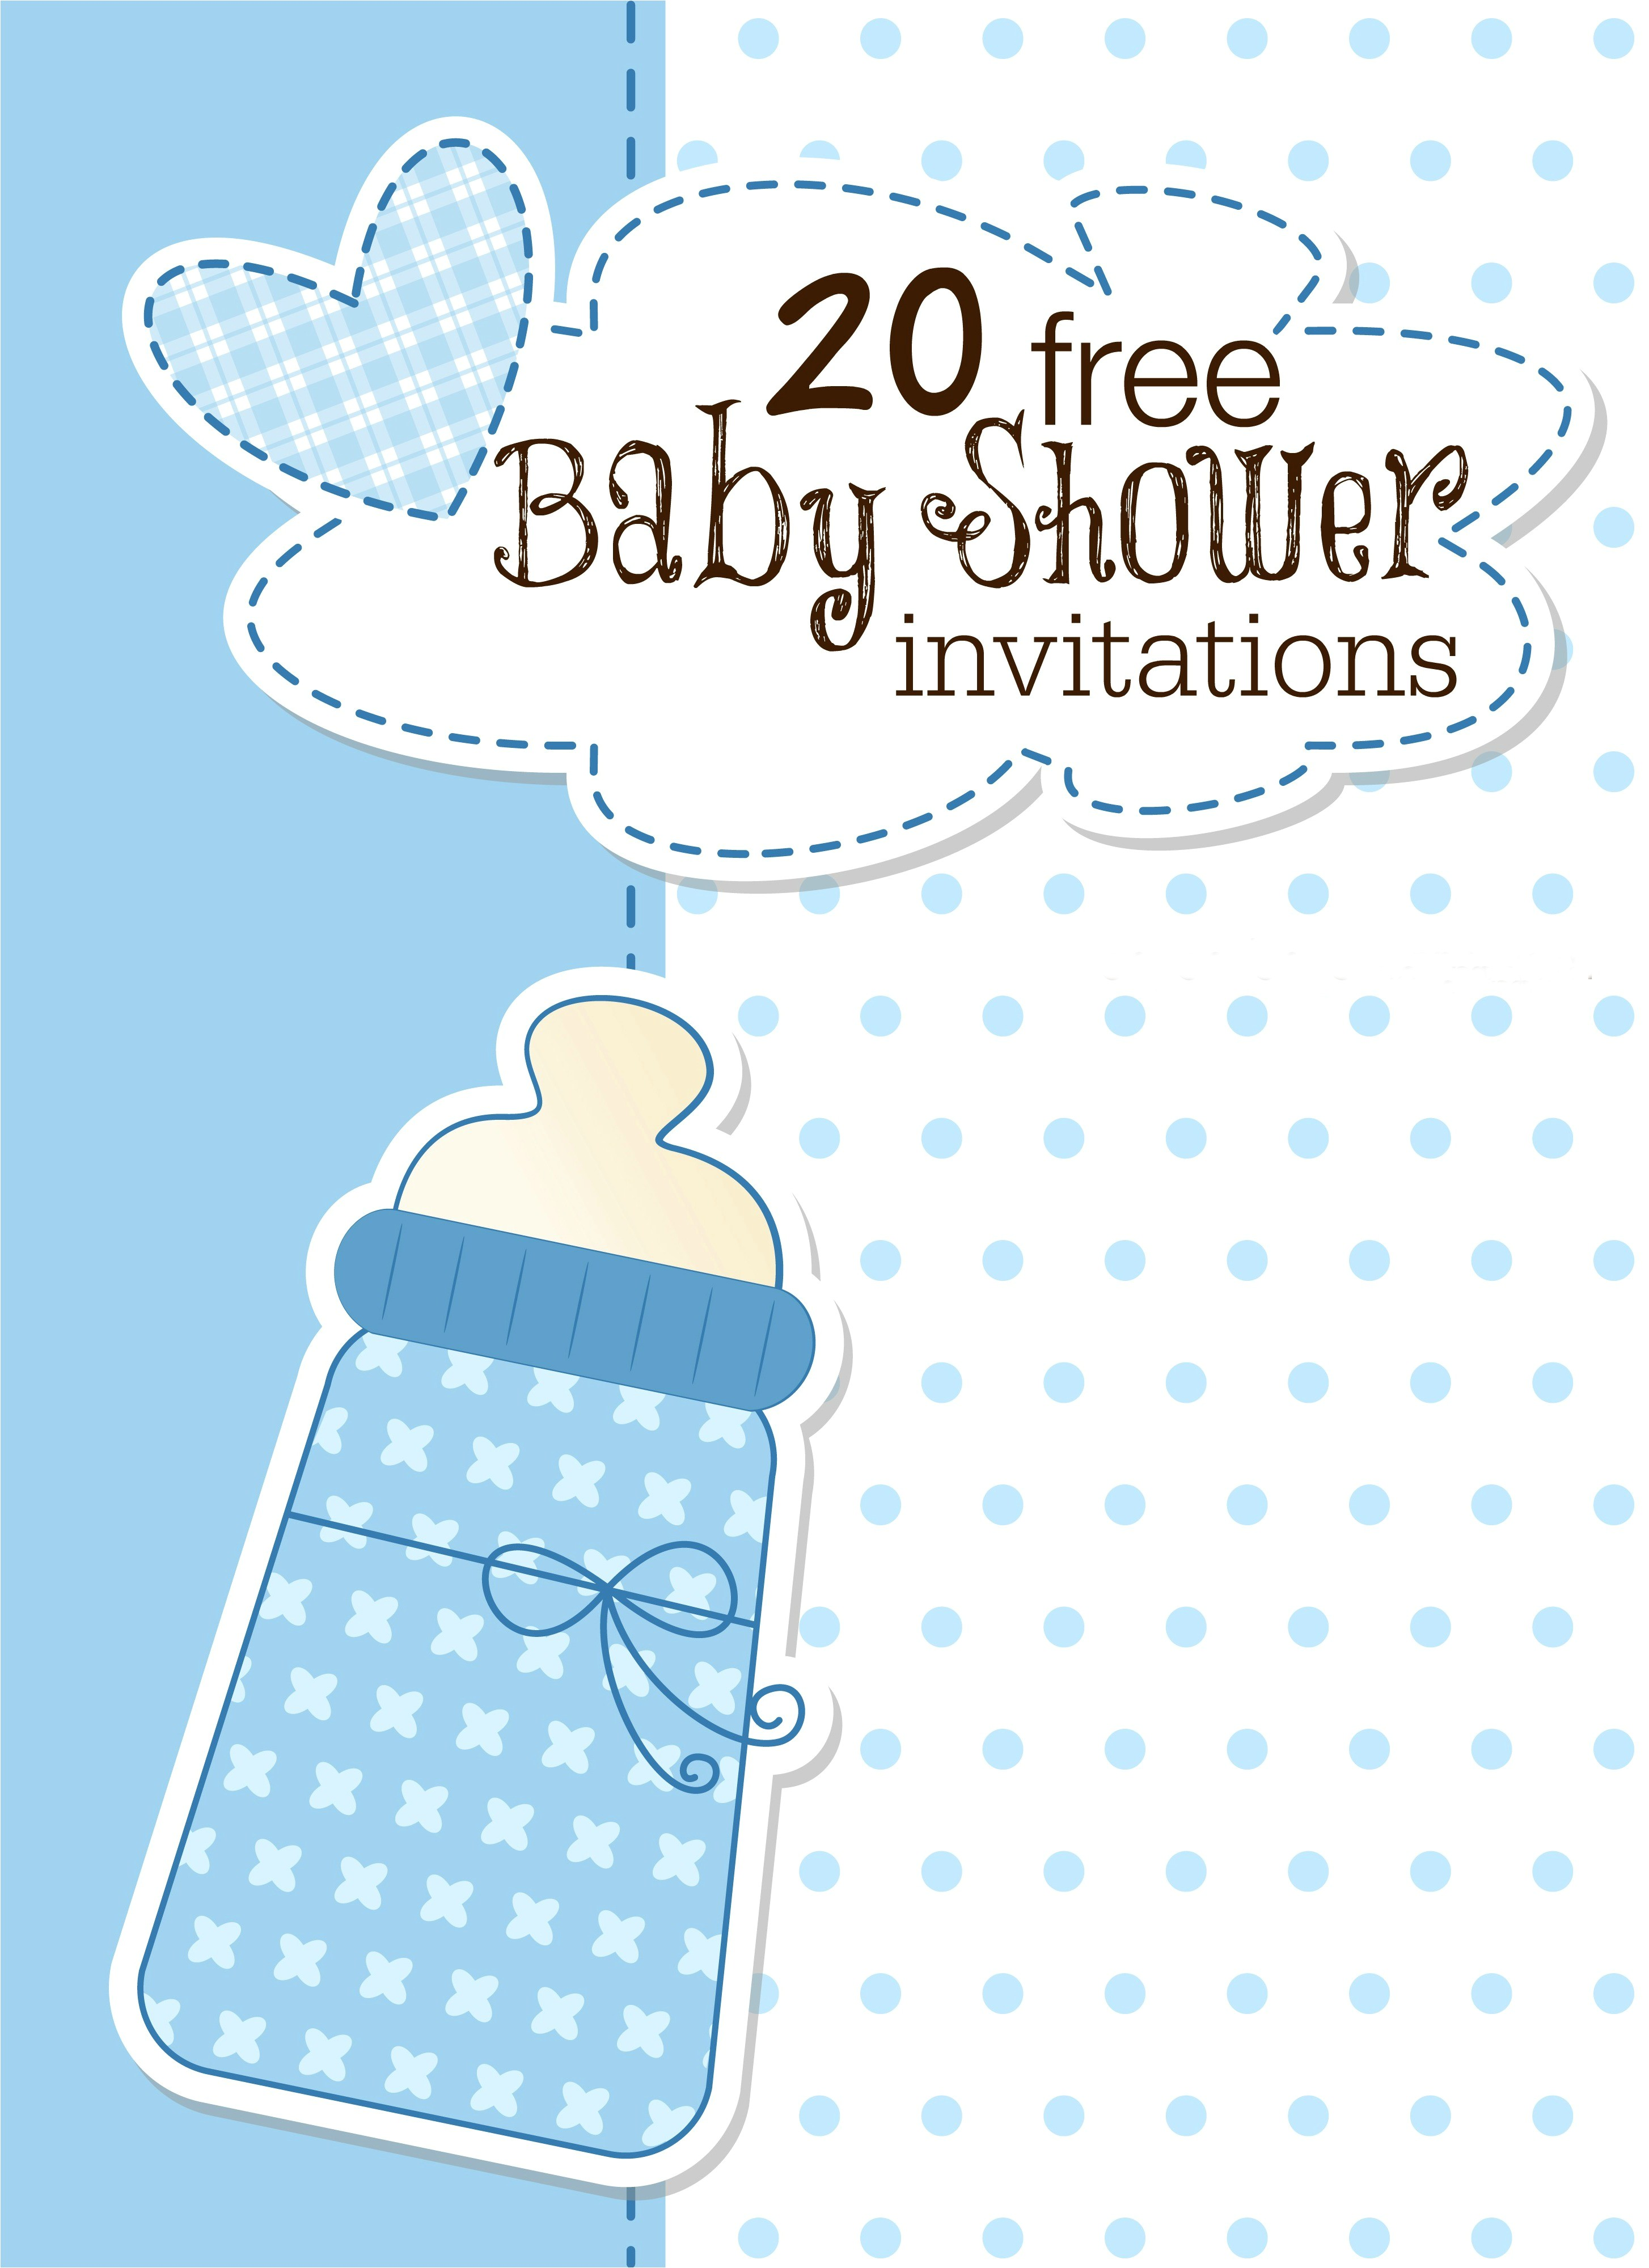 18 free baby shower invites